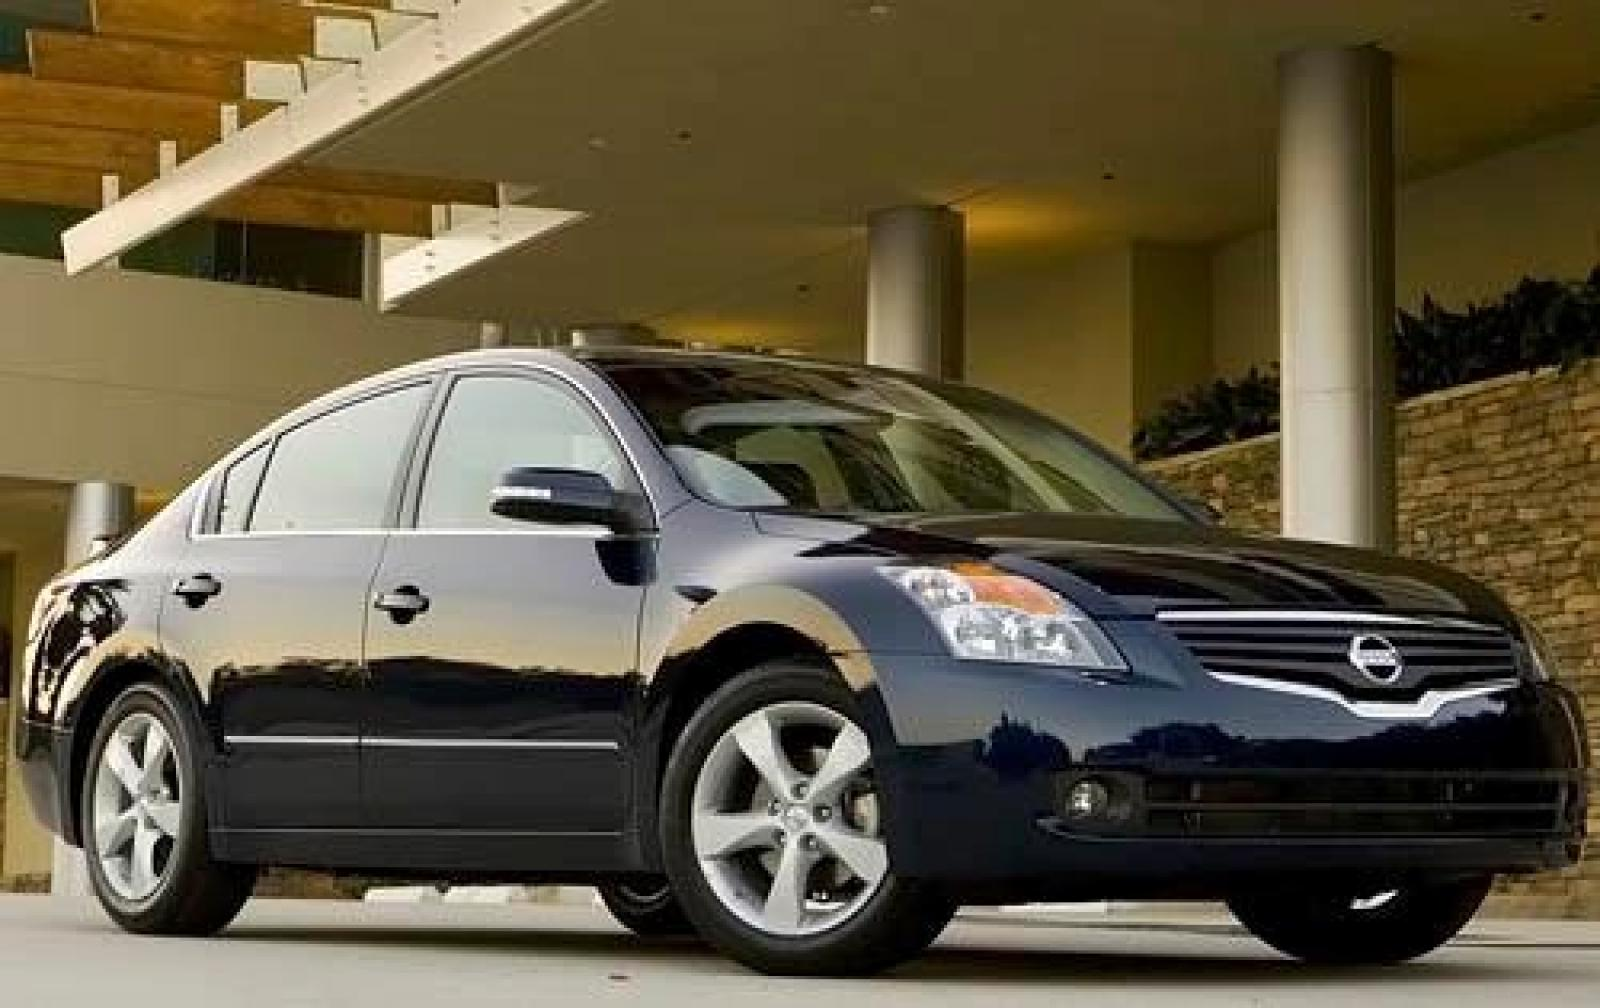 2009 nissan altima information and photos zombiedrive 800 1024 1280 1600 origin 2009 nissan altima vanachro Images